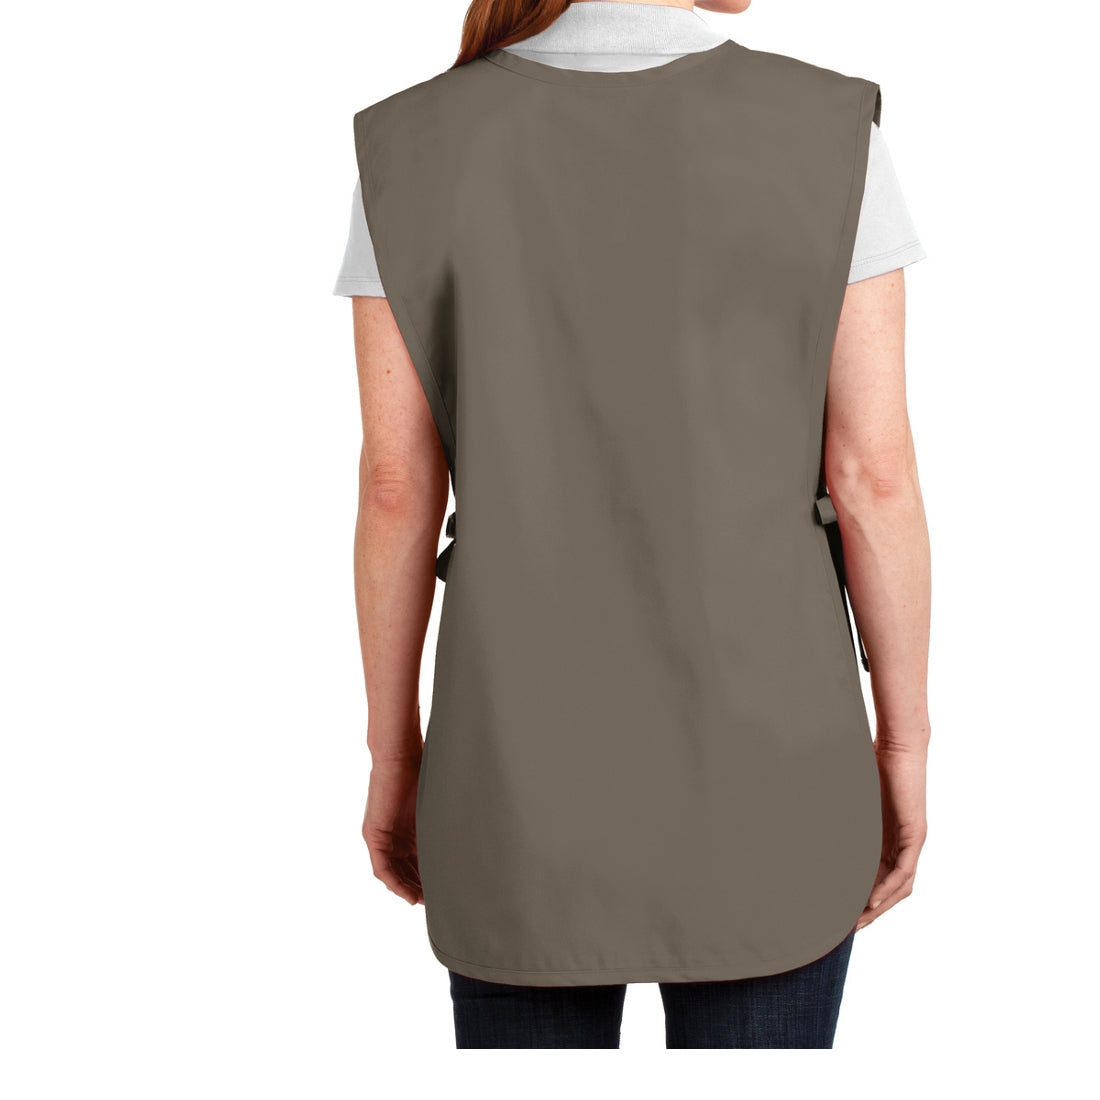 Easy Care Cobbler Apron with Stain Release - Khaki